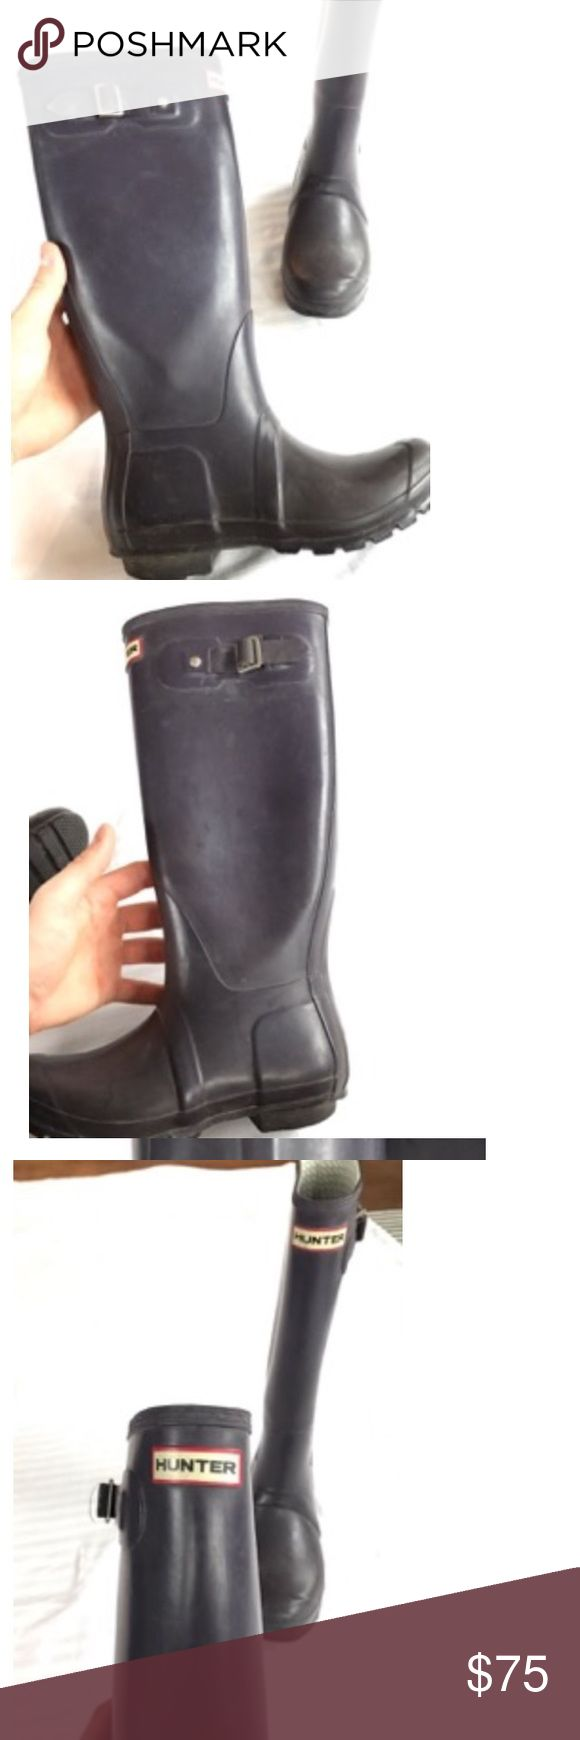 Purple Navy HUNTER BOOTS Size 6F knee high Selling these HUNTER BOOTS for $75 because they were originally $150 so you're getting a great deal by only having to pay half price :) Hunter Boots Shoes Winter & Rain Boots